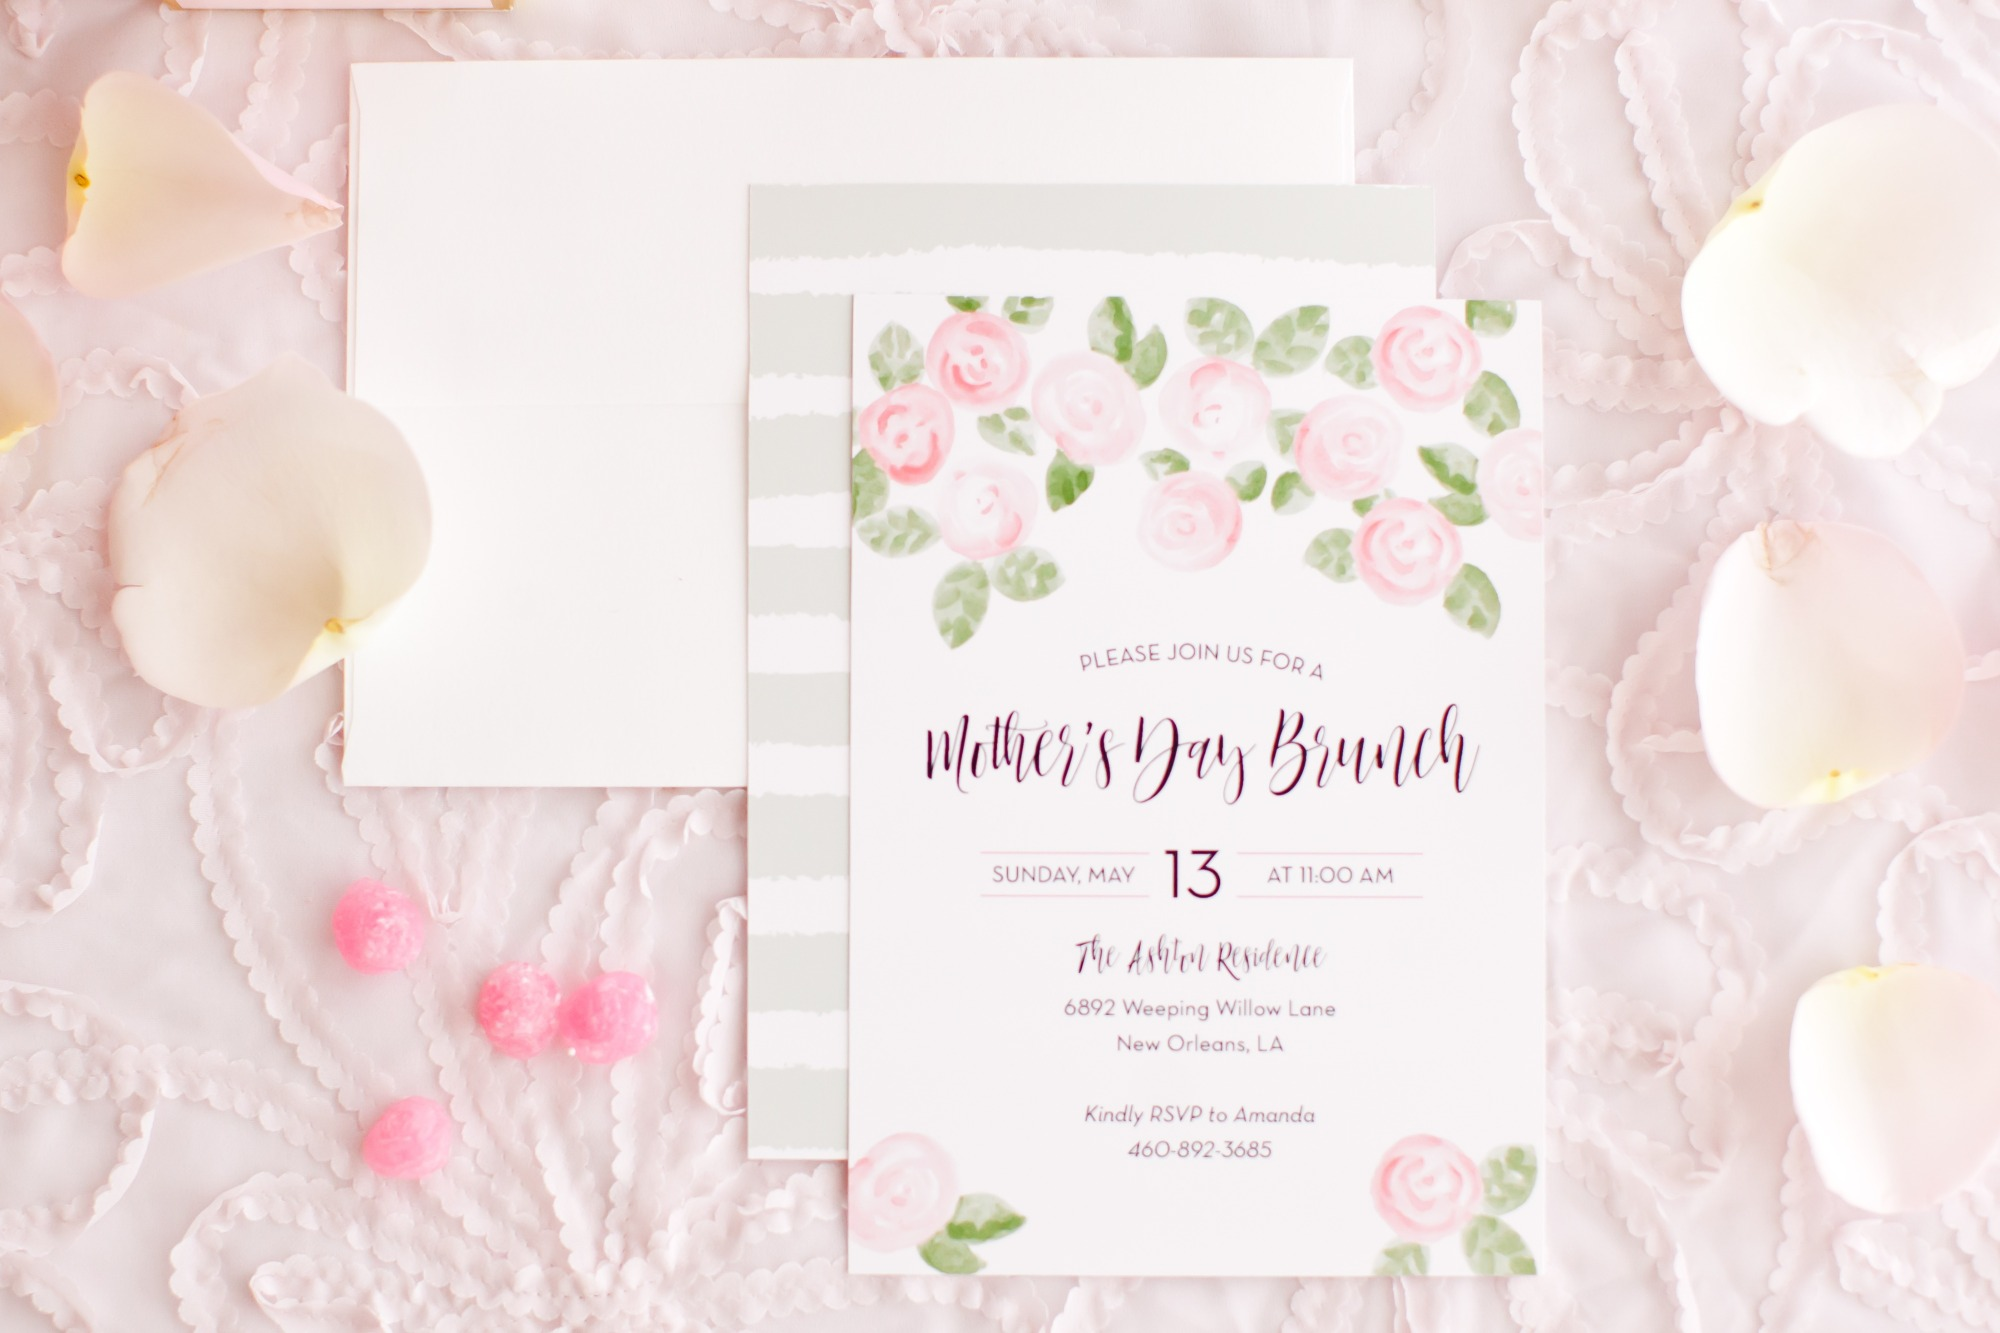 Invitation from Mother's Day Brunch Styled by Kiss Me Kate Studio | Black Twine